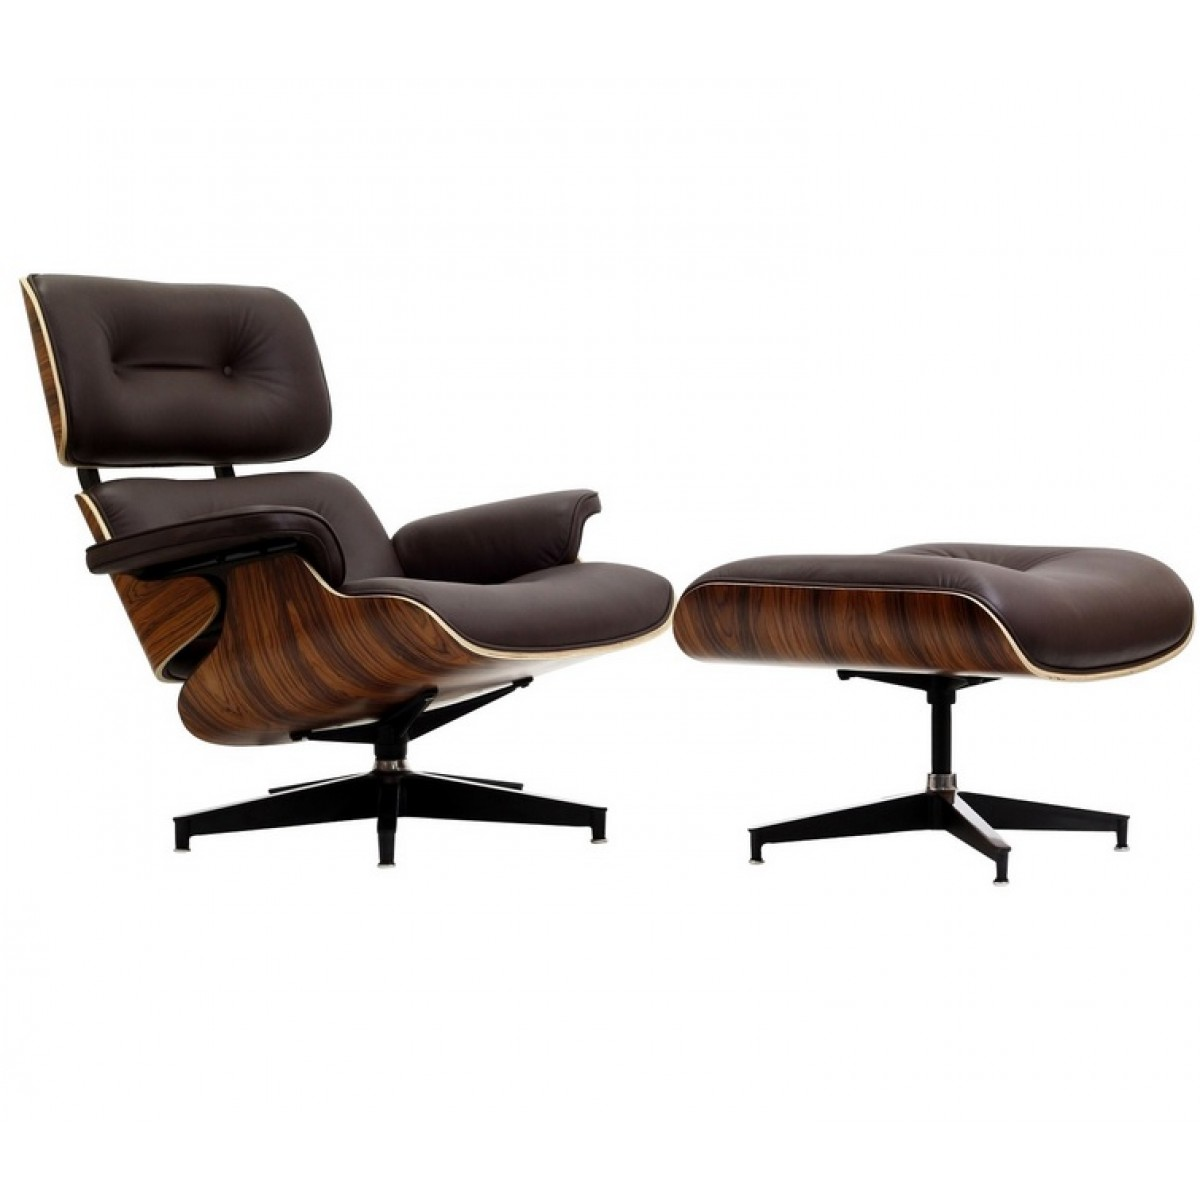 Eames Inspired Lounge Chairs Eames Style Lounge Chair And Ottoman Brown Leather Walnut Wood